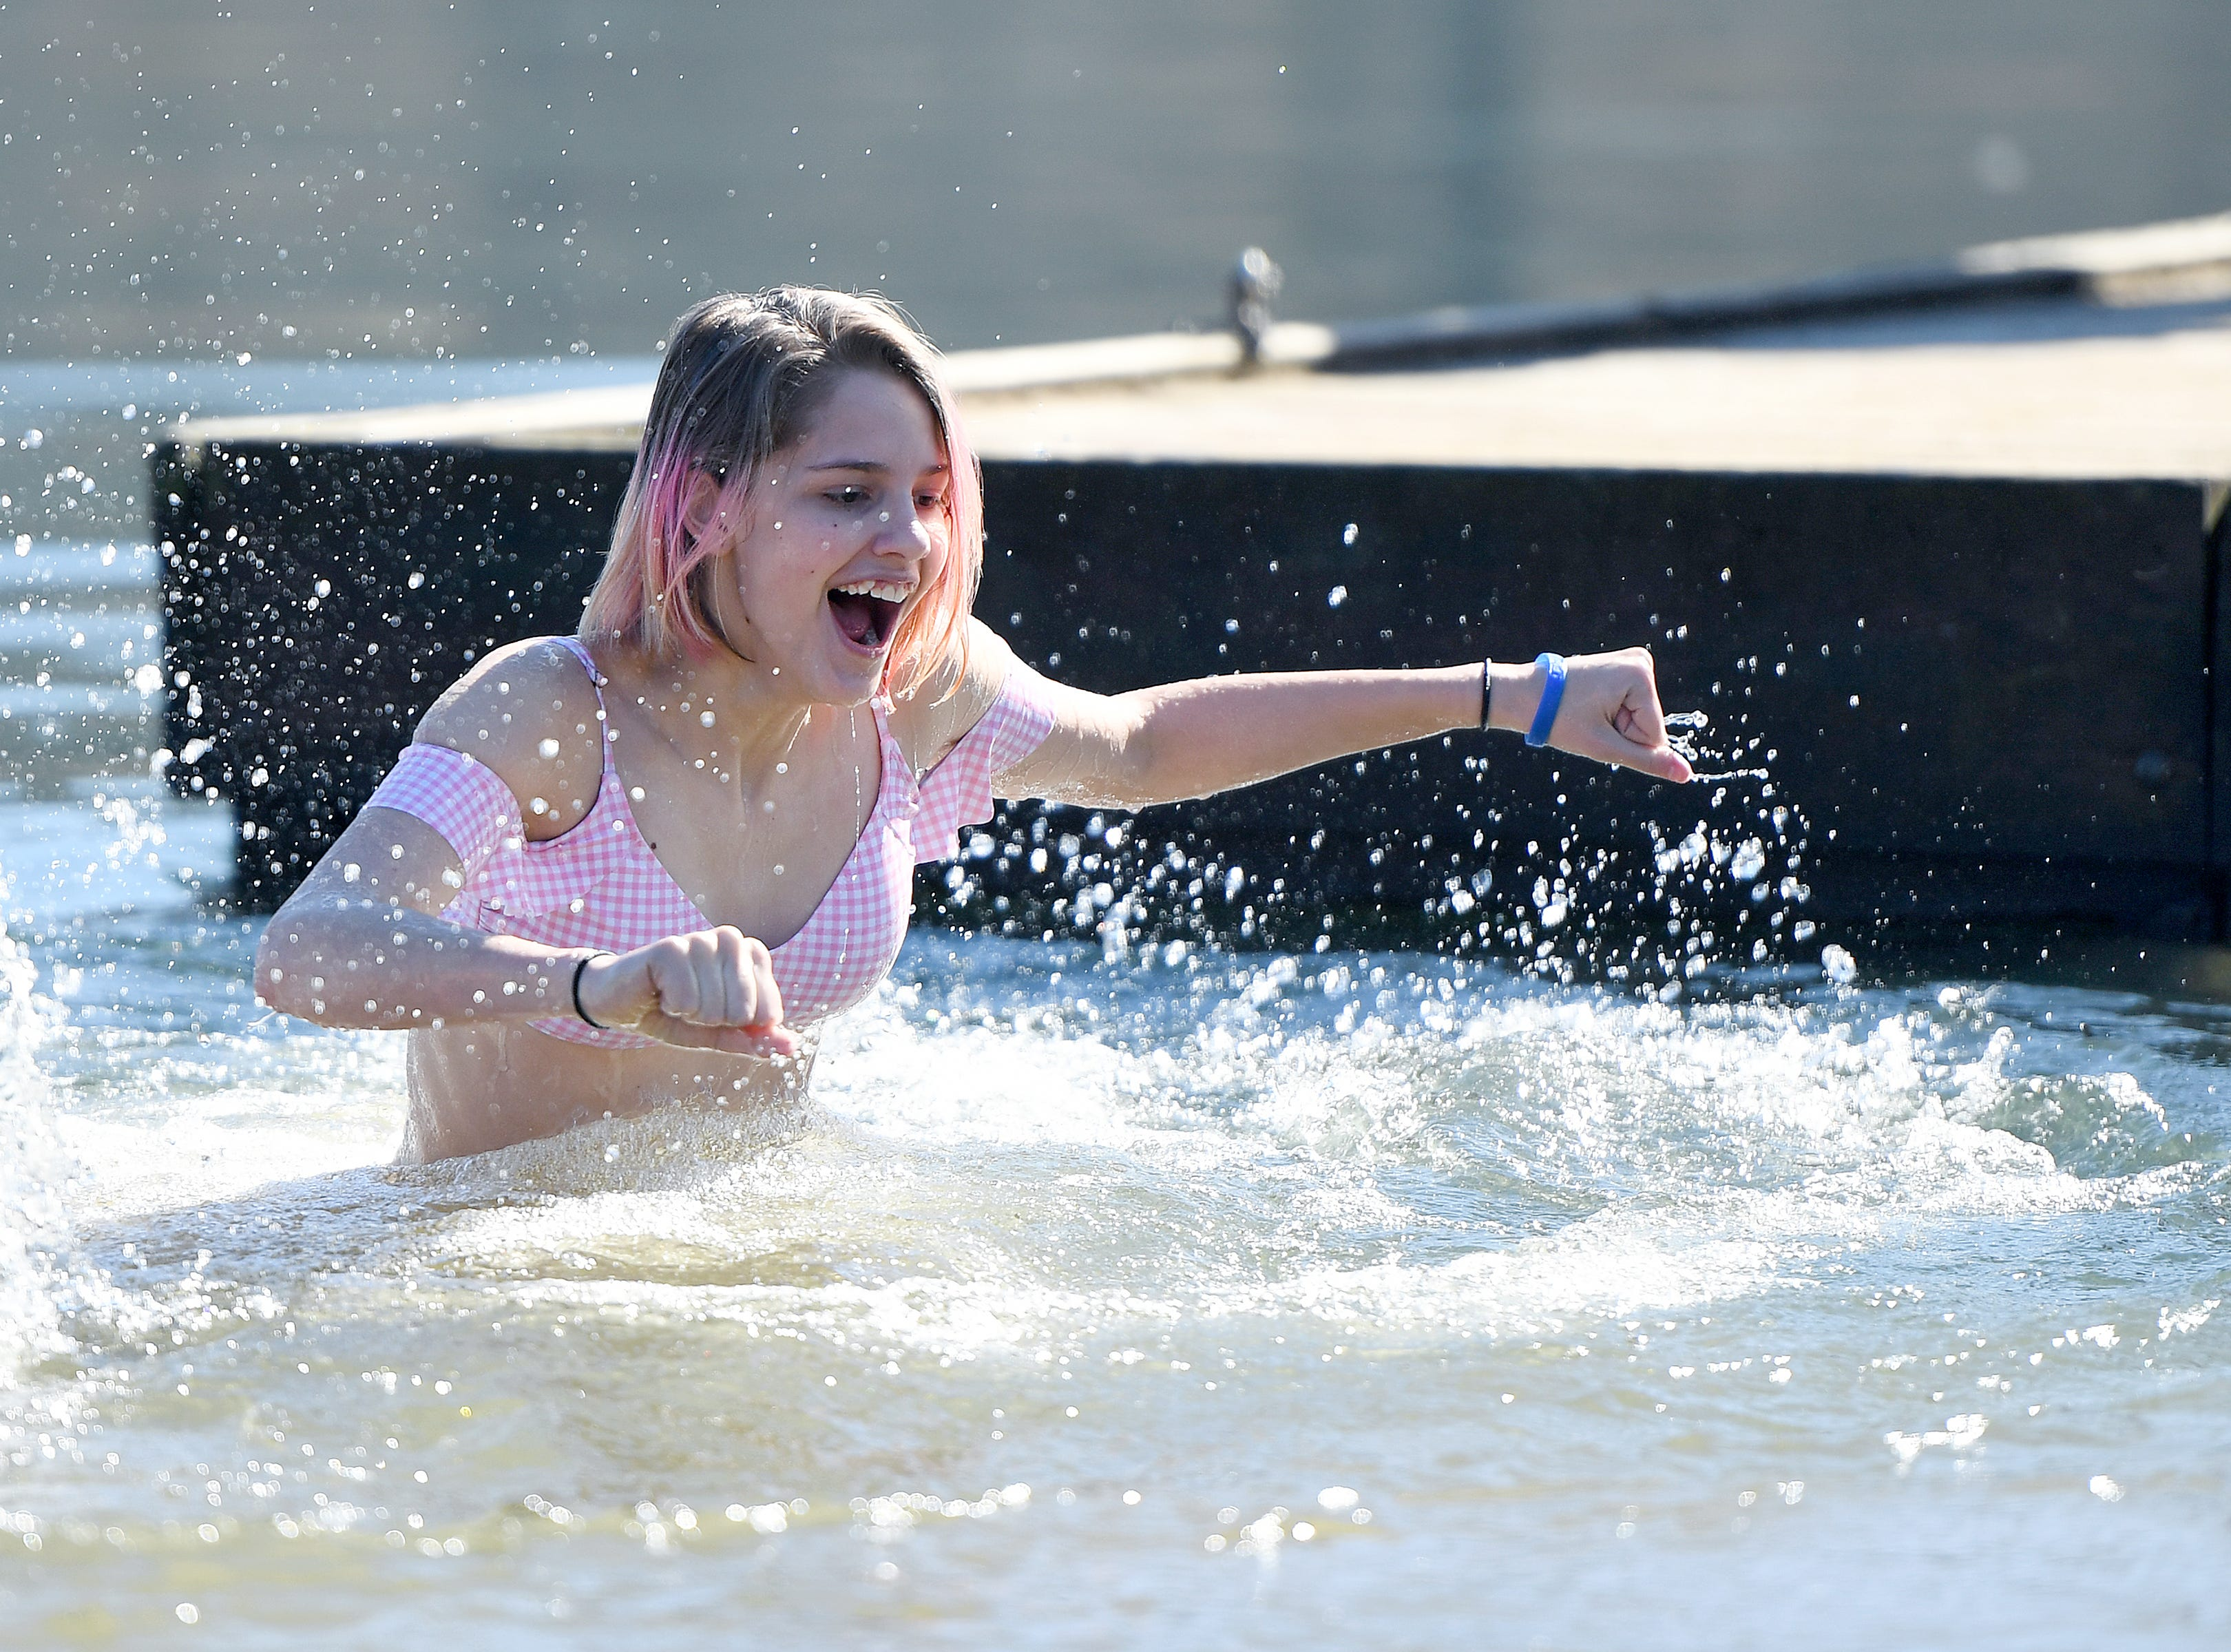 Cami Phillips, 15, makes her way out of the chilly waters of Lake Junaluska after jumping from the dock during the 7th Annual Plunge at Lake Junaluska Conference and Retreat Center on Feb. 2, 2019. The event raised more than $30,000 for Kids in the Creek and environmental education.